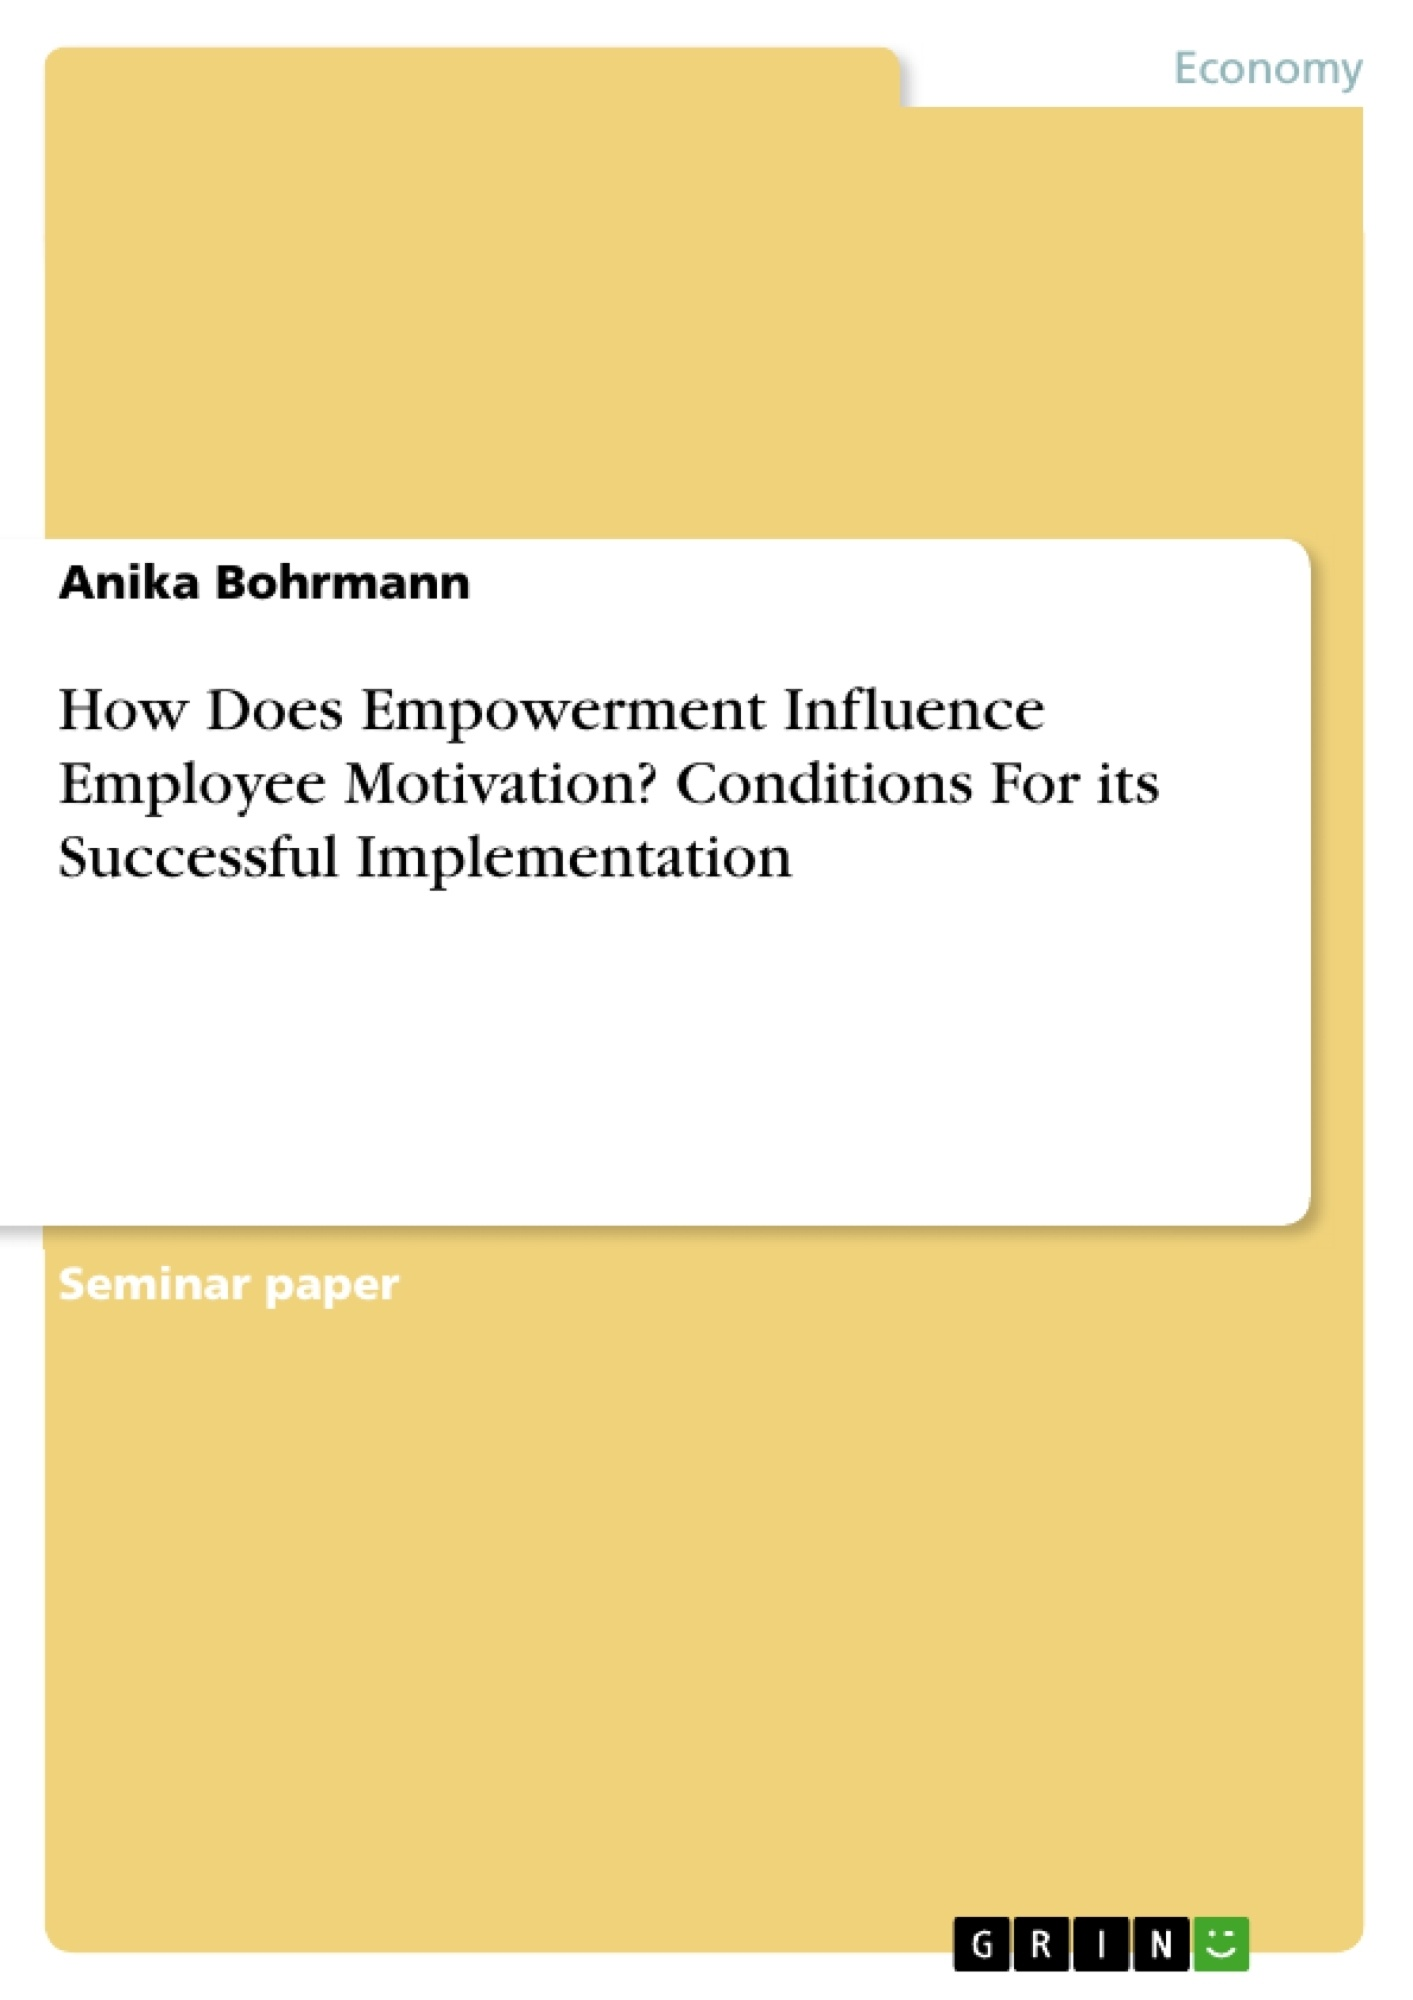 Title: How Does Empowerment Influence Employee Motivation? Conditions For its Successful Implementation